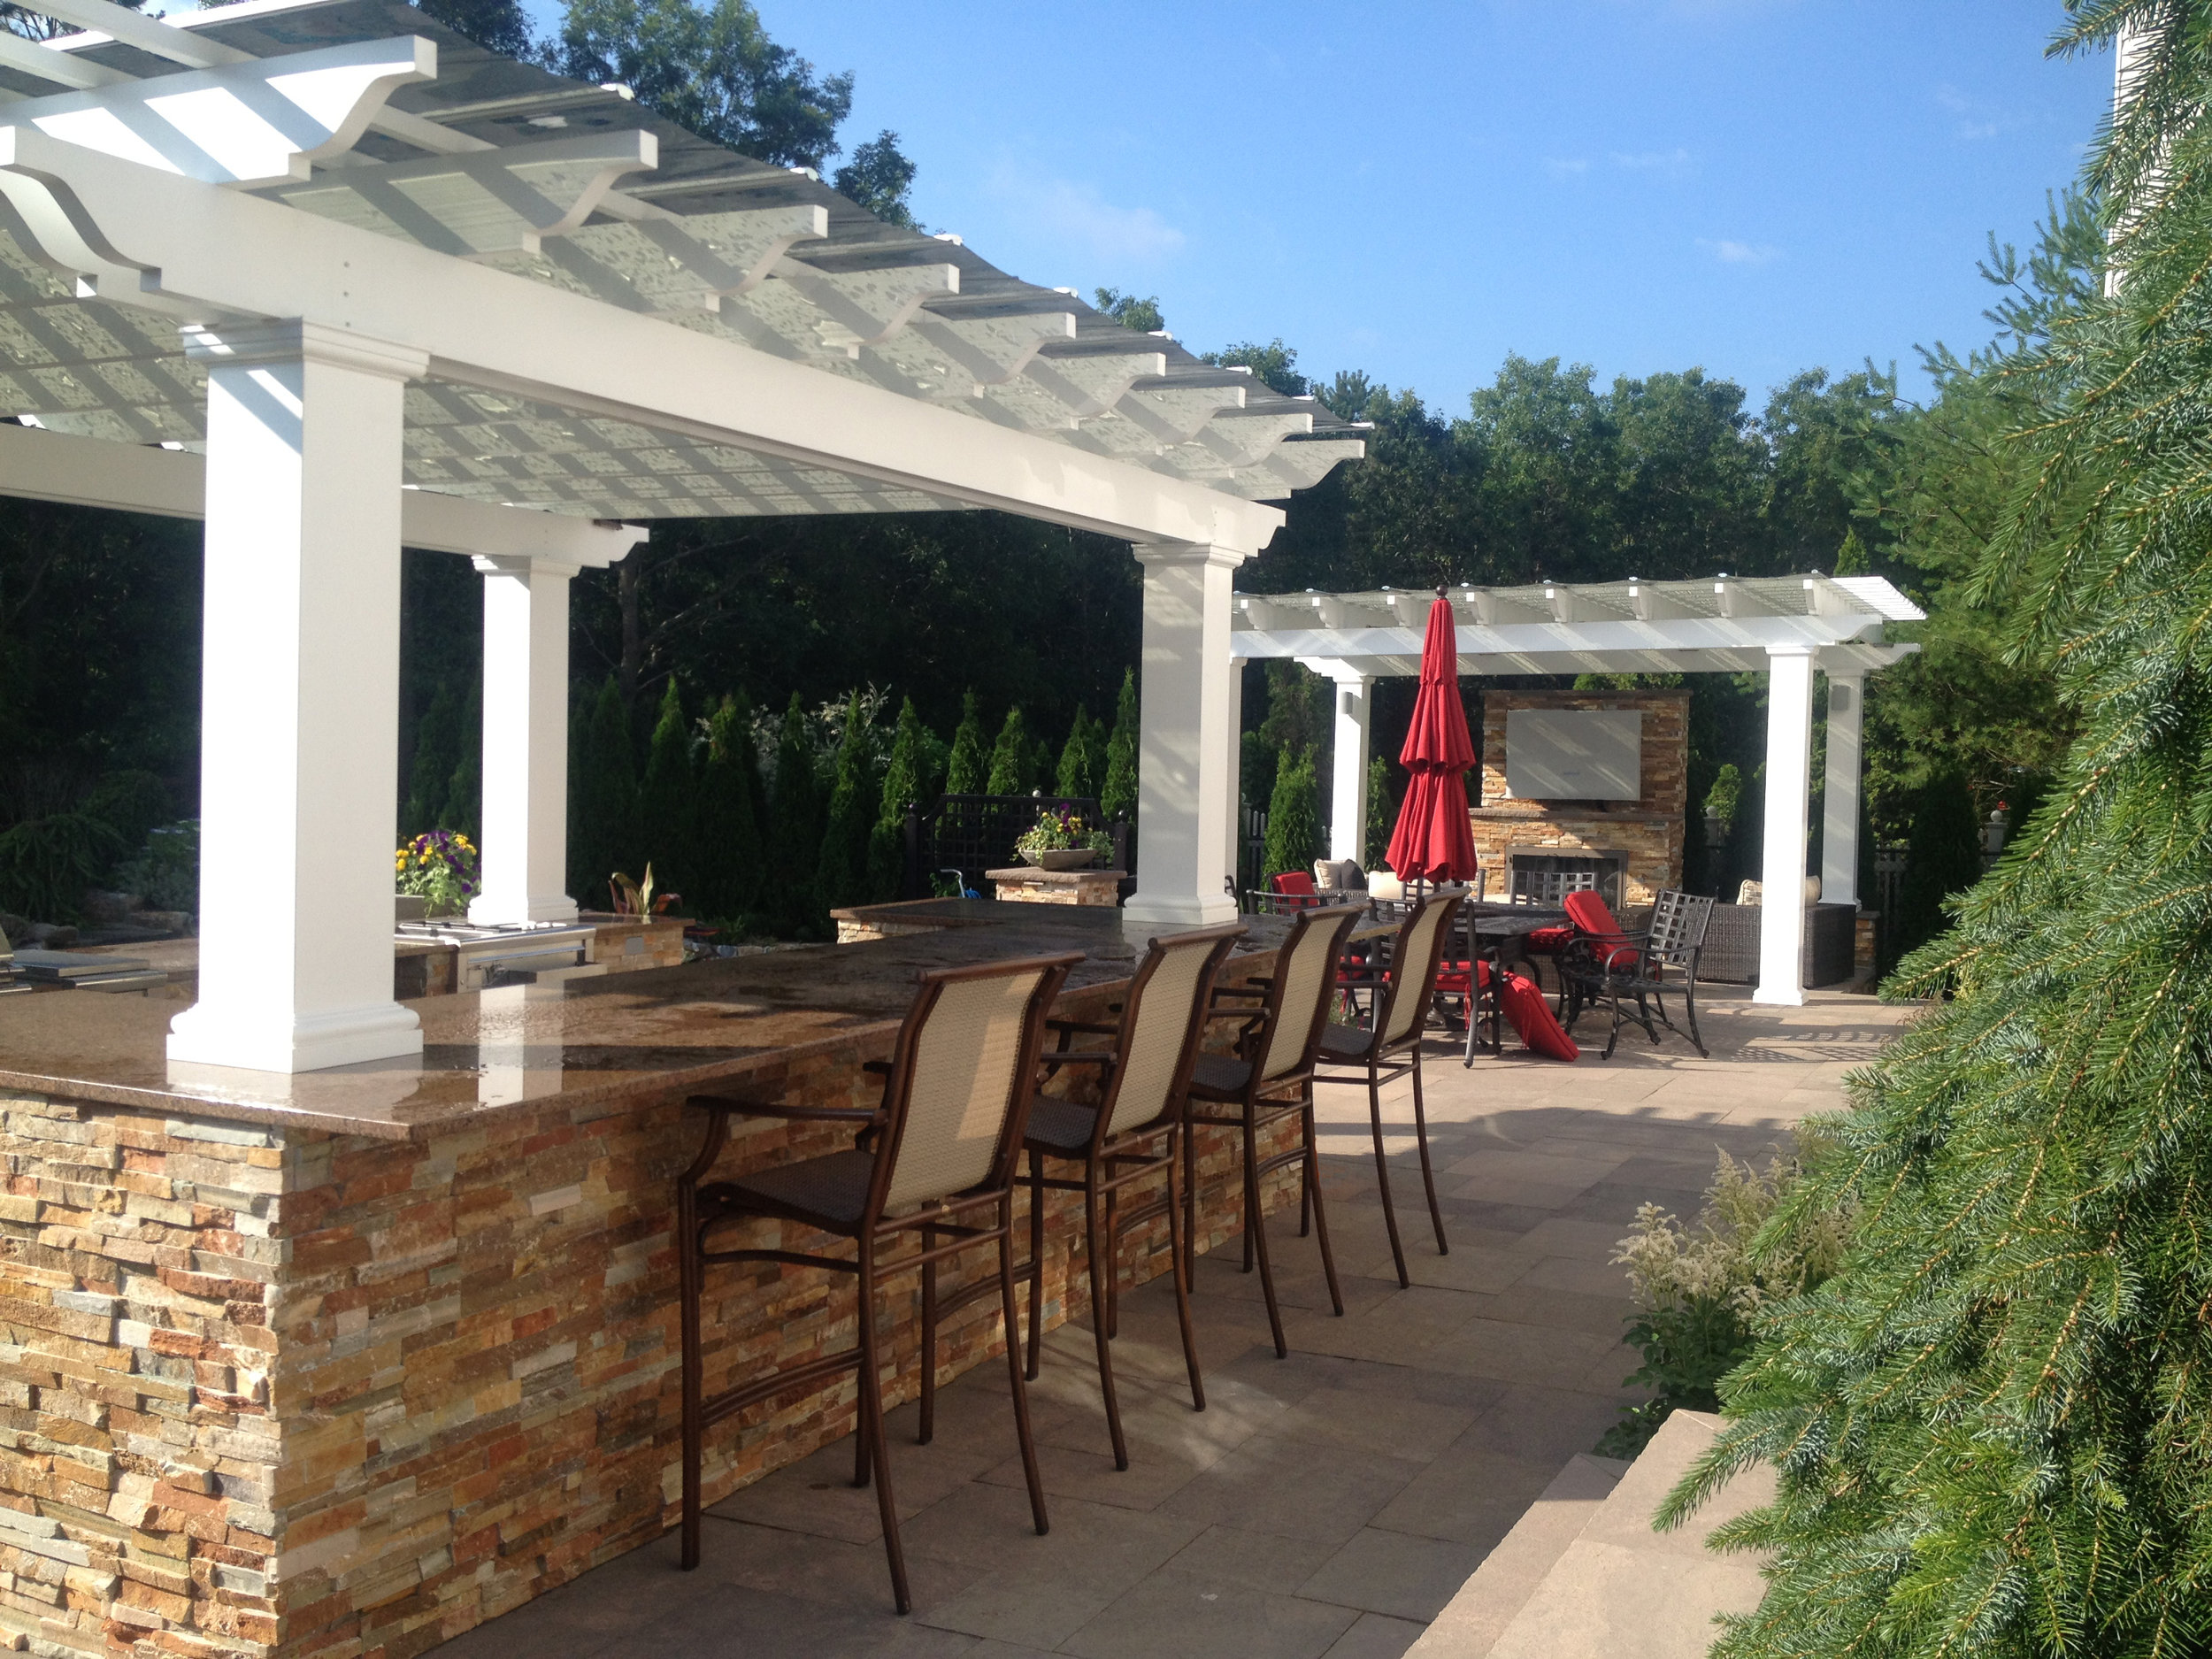 Top quality pergola in Oyster Bay NY.